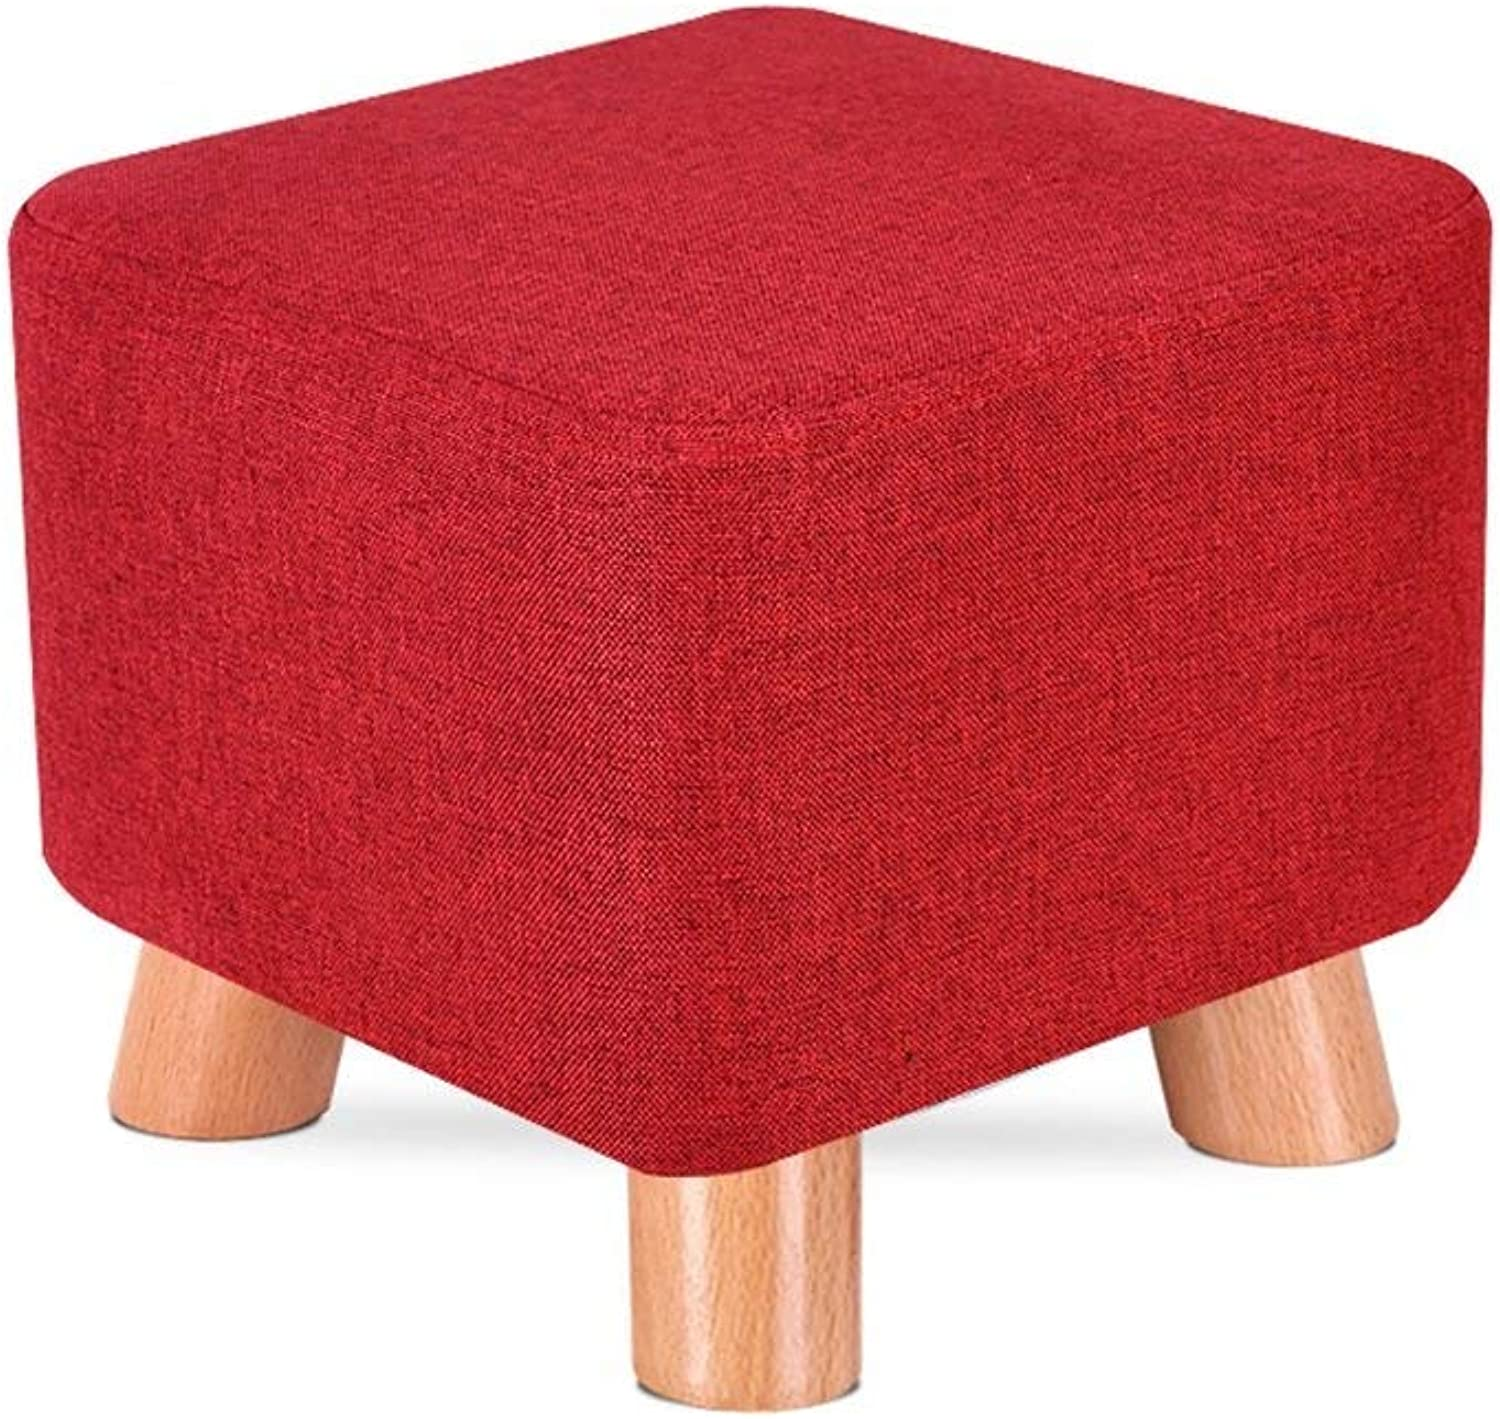 GJD Sofa Stool Solid Wood shoes Bench shoes Bench Square Stool Cloth Art Stool Tea Table Bench Home Stool Strong and Sturdy Foldable Leather Sofa Stool (color   Red Dates)